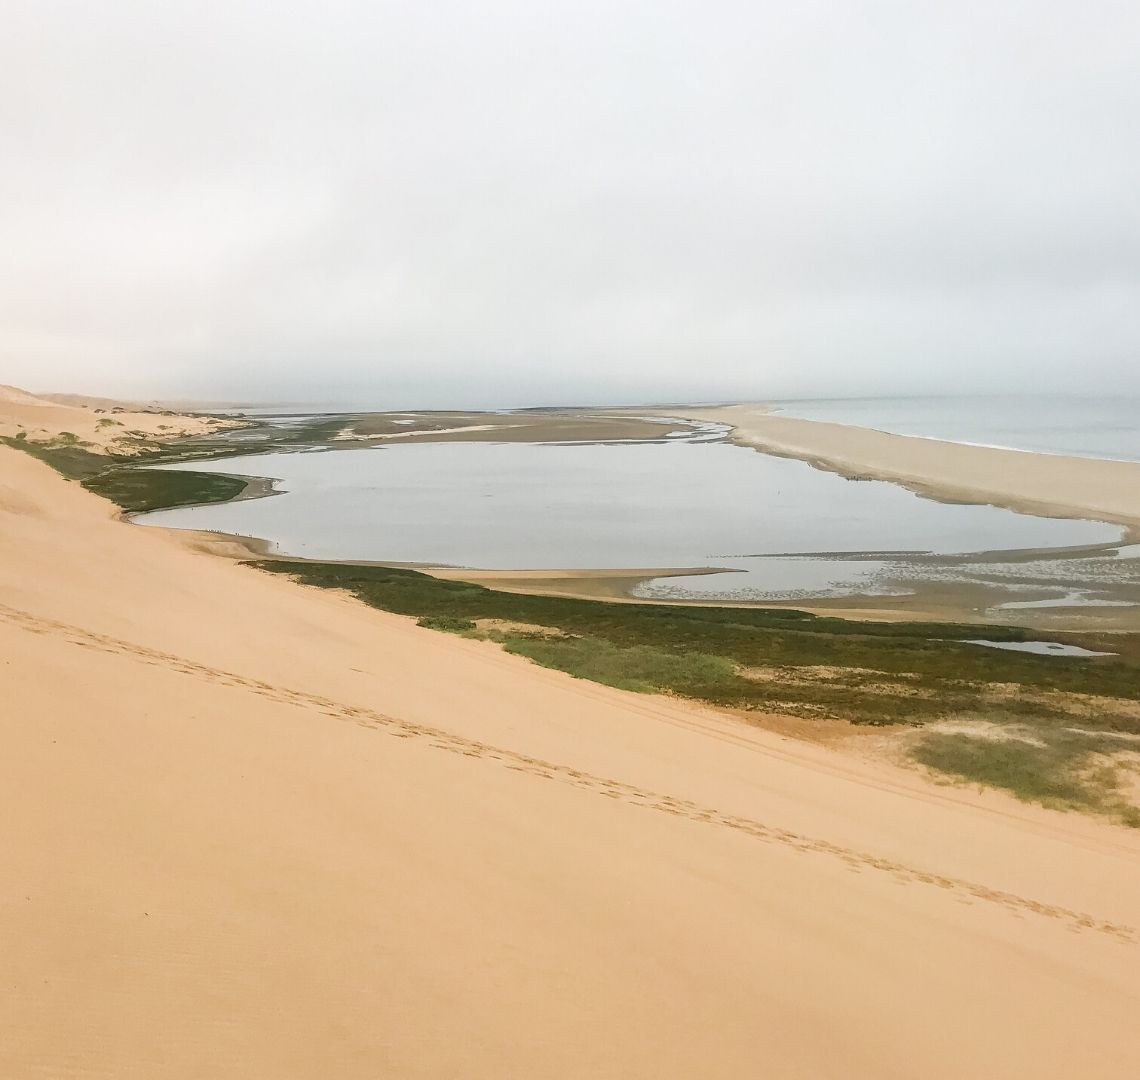 2 Week Namibia Itinerary - The sand dunes of Walvis Bay drop straight into the ocean in a very dramatic way. We climbed to the top and could see the sea lakes below us, then a sandbank and then the sea.